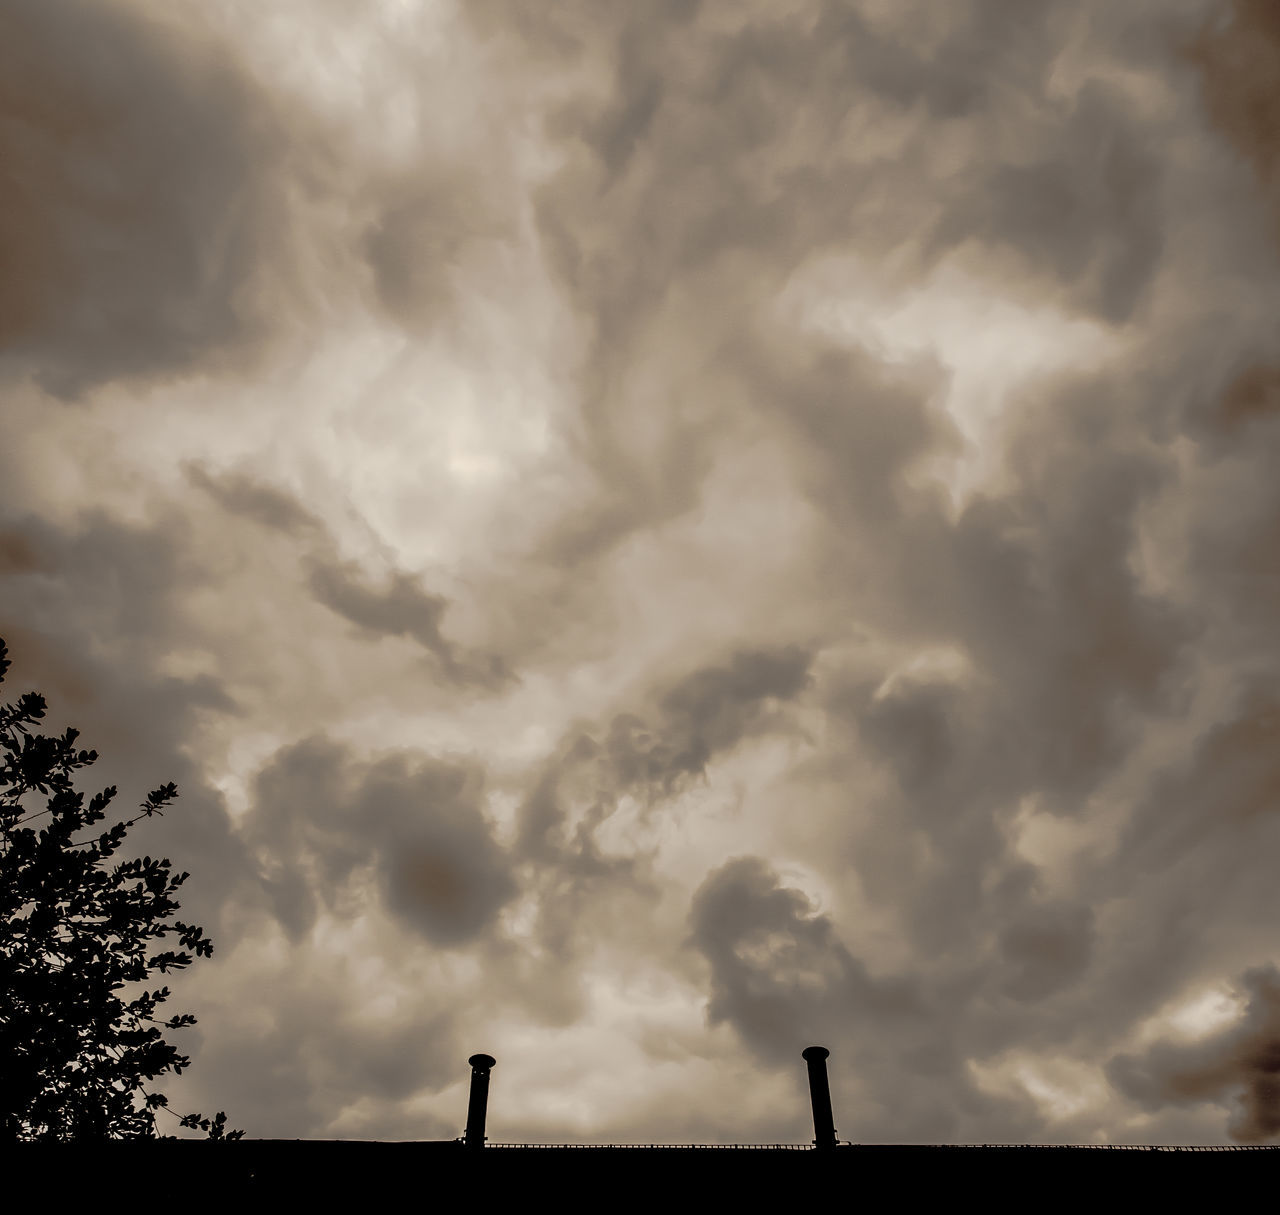 cloud - sky, sky, nature, weather, no people, beauty in nature, tree, storm cloud, scenics, tranquility, outdoors, day, low angle view, silhouette